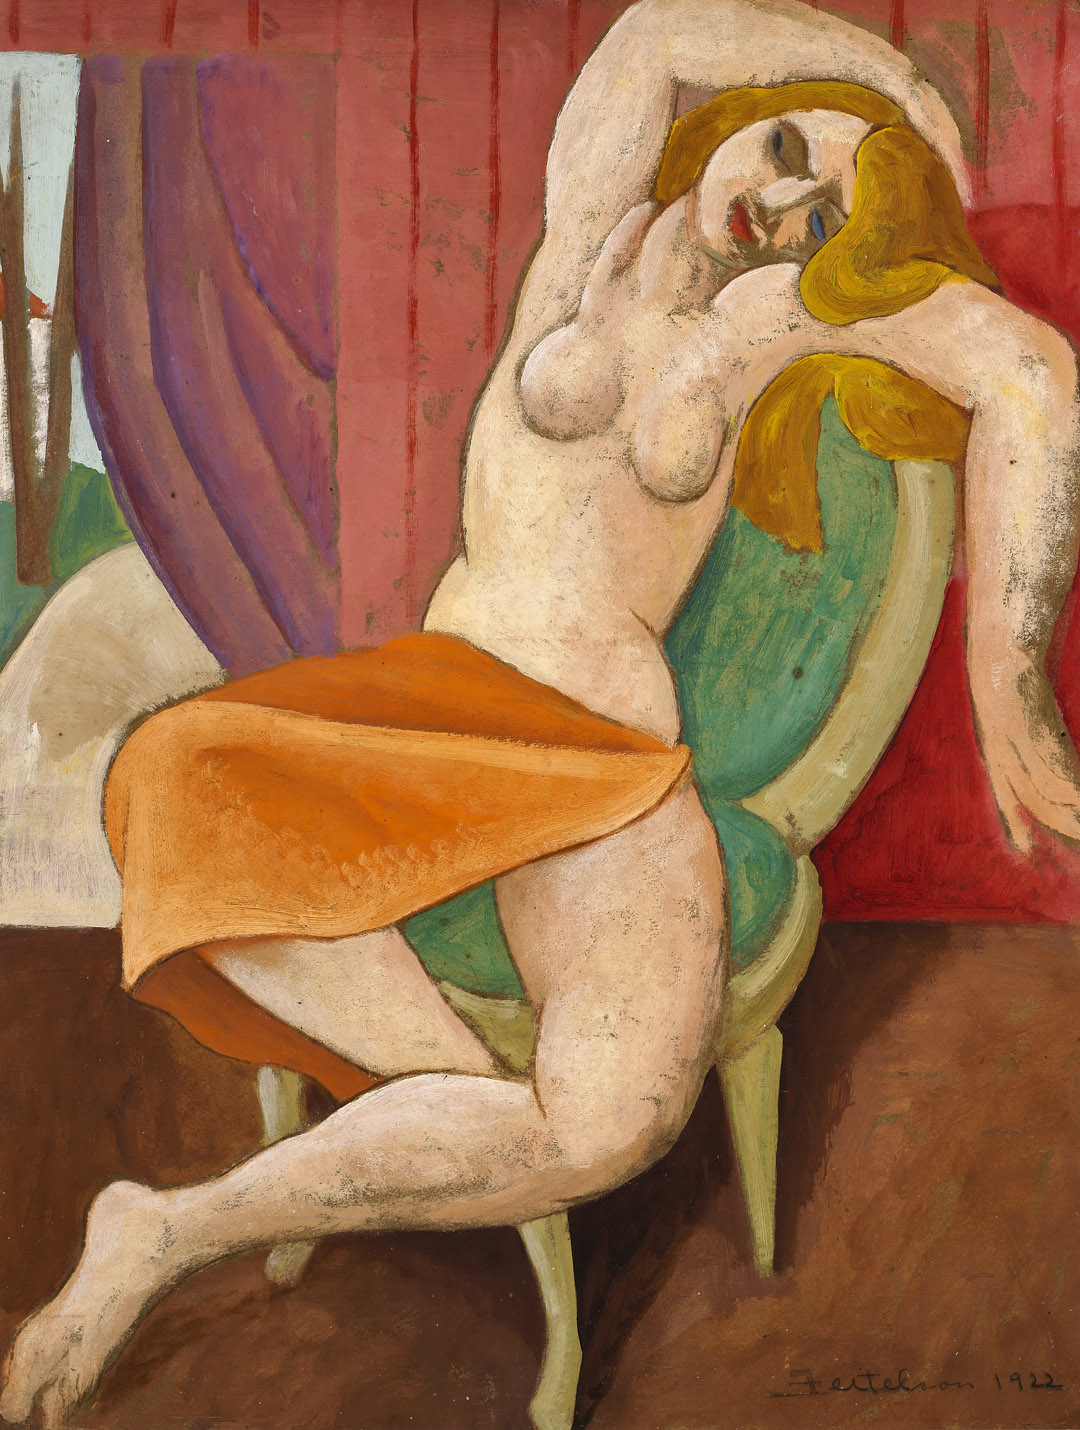 Untitled (Seated Figure) , 1922  oil on board 24 x 18 1/4 inches; 61 x 46.4 centimeters